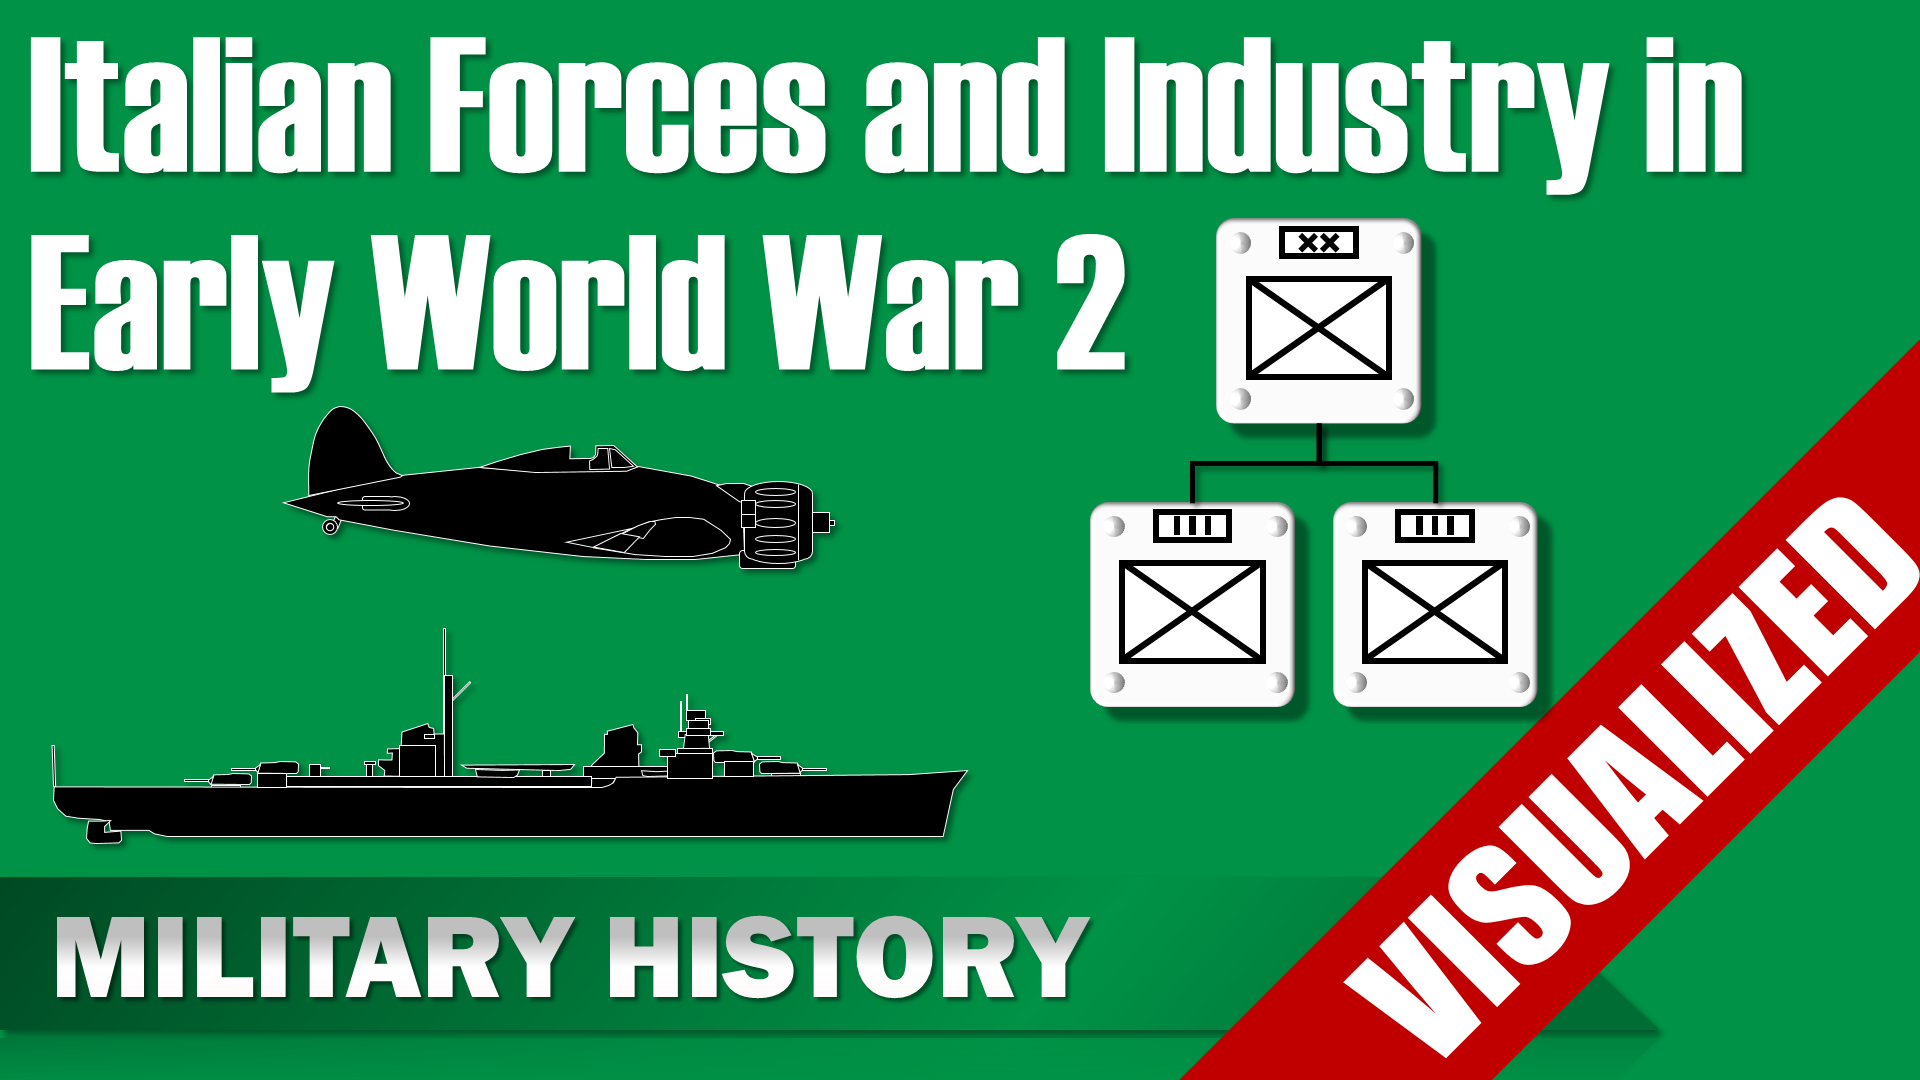 Italian Forces and Industry in Early World War 2 (1939-1940)